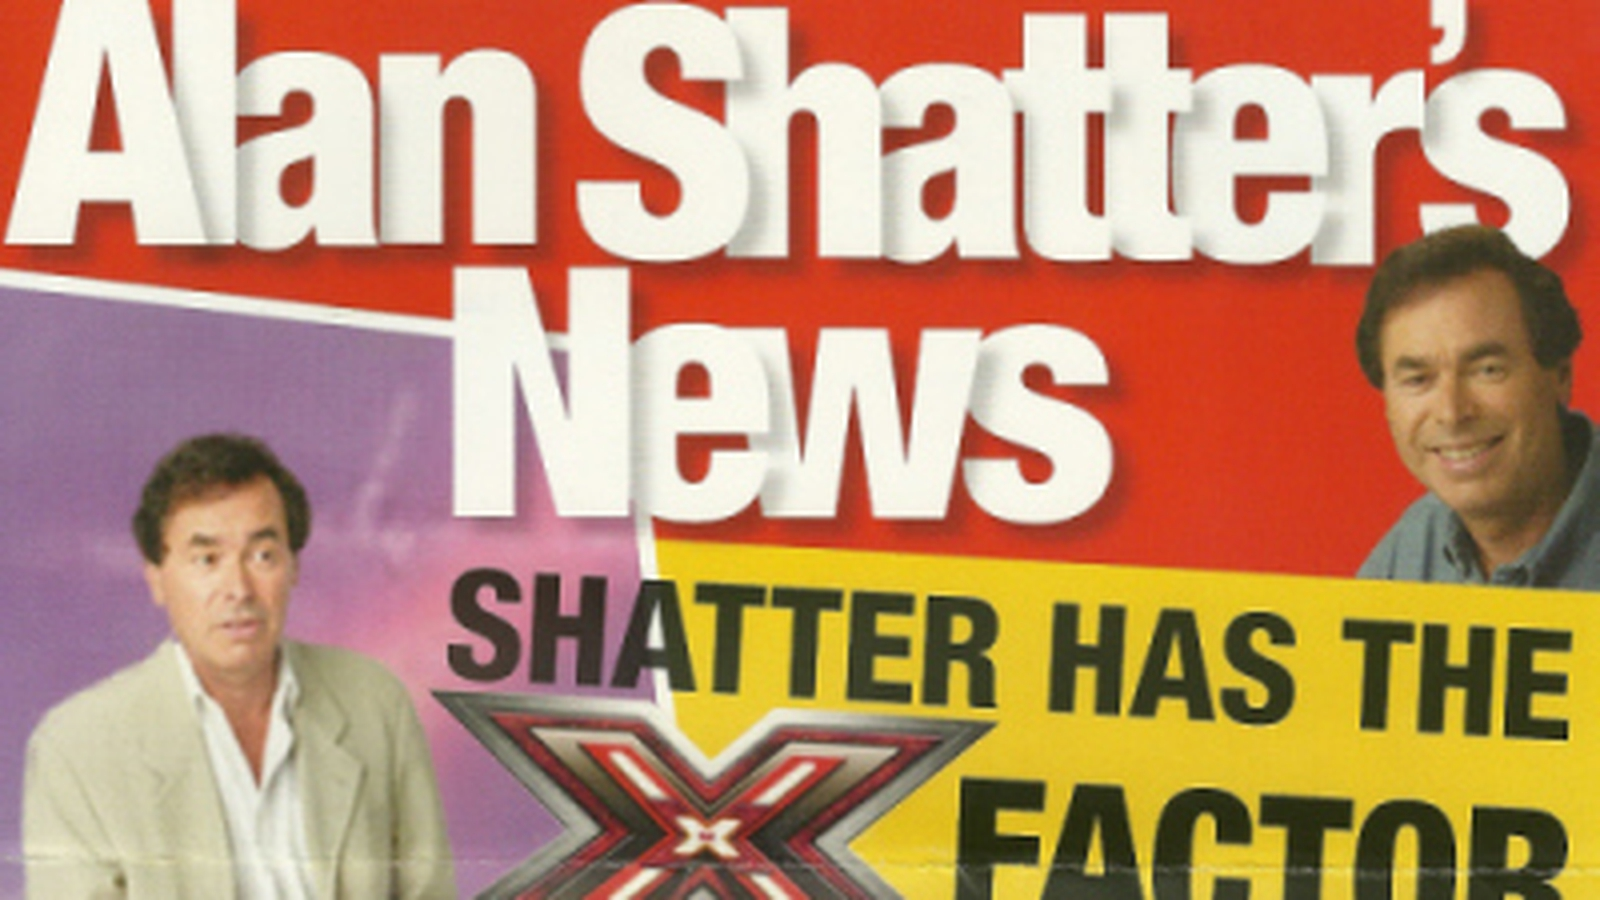 Labour condoms, the Charlton years and Alan Shatter's 'X-Factor'